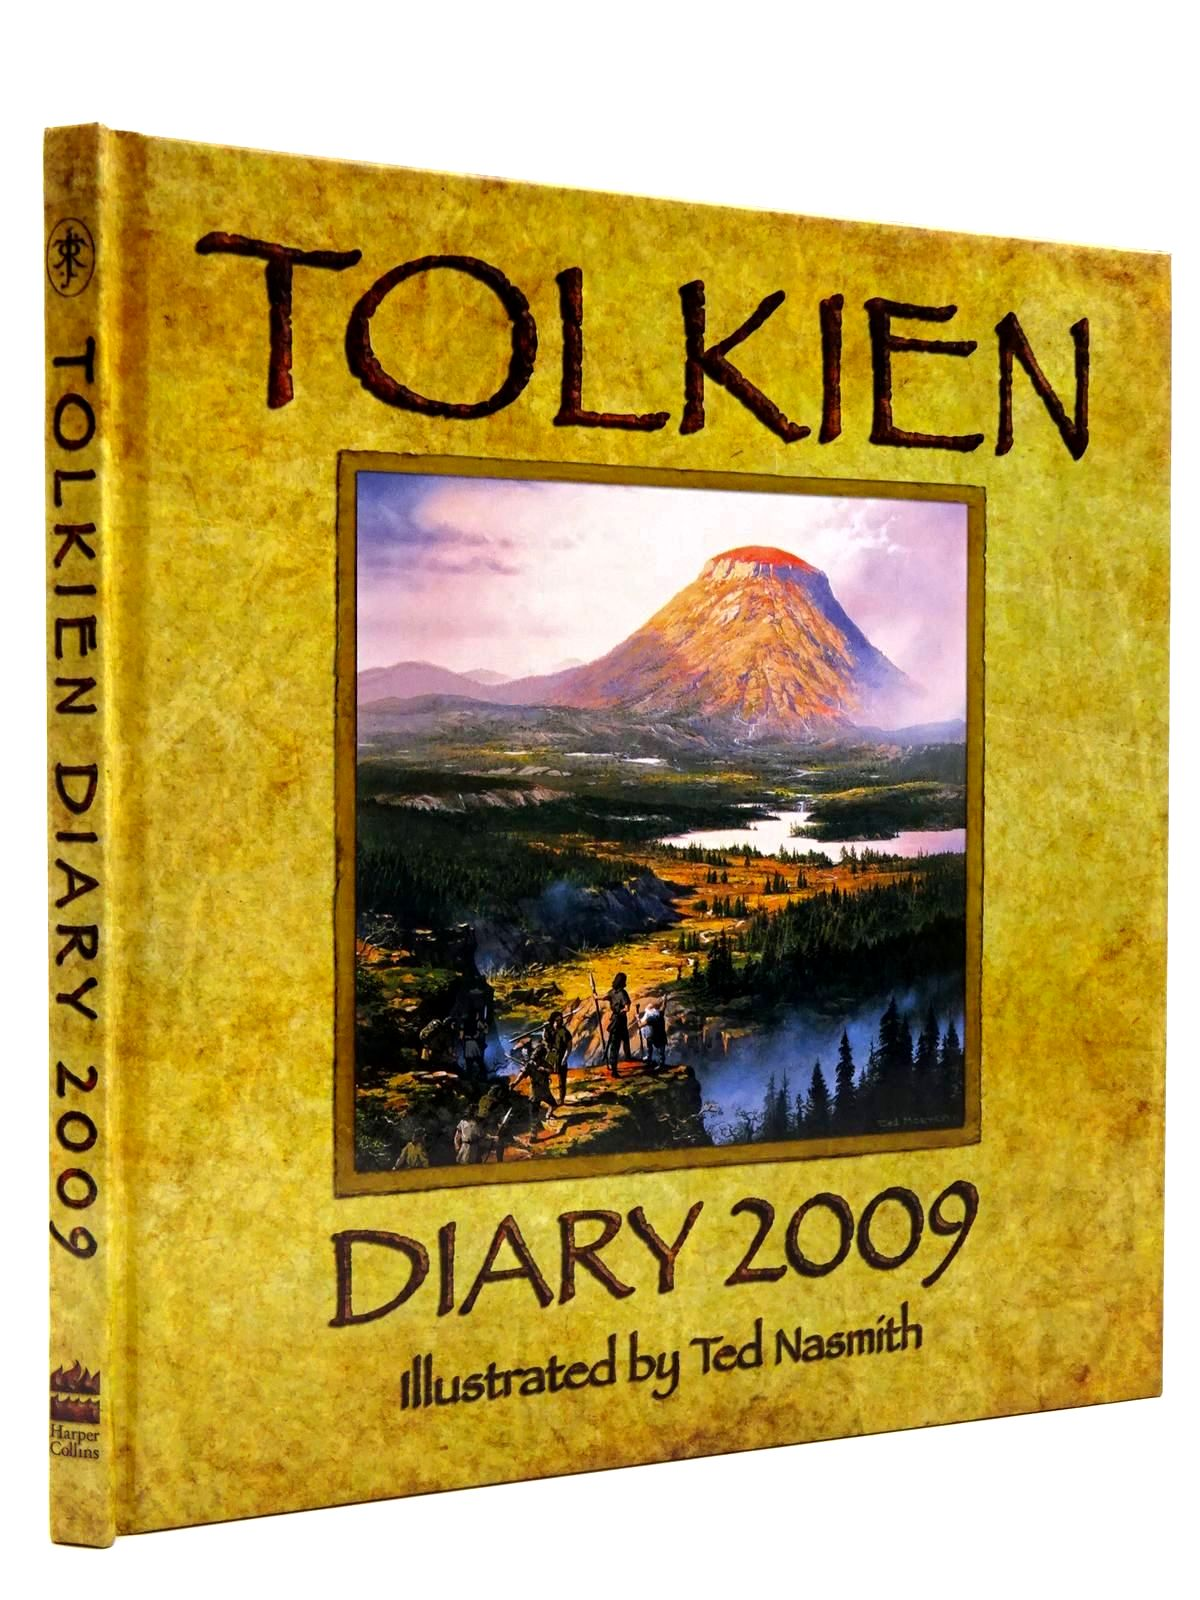 Photo of TOLKIEN THE SILMARILLION DIARY 2009